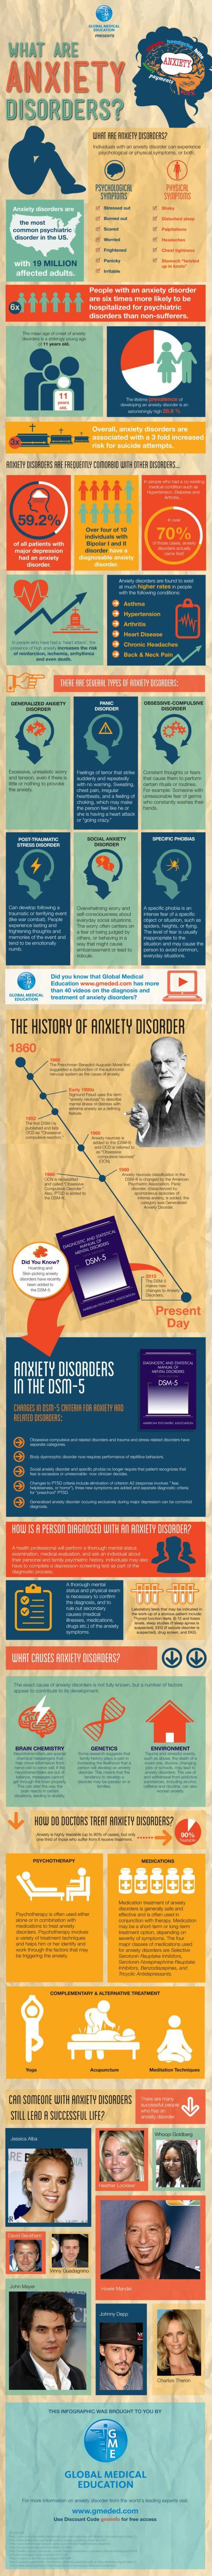 What Are Anxiety Disorders? infographic